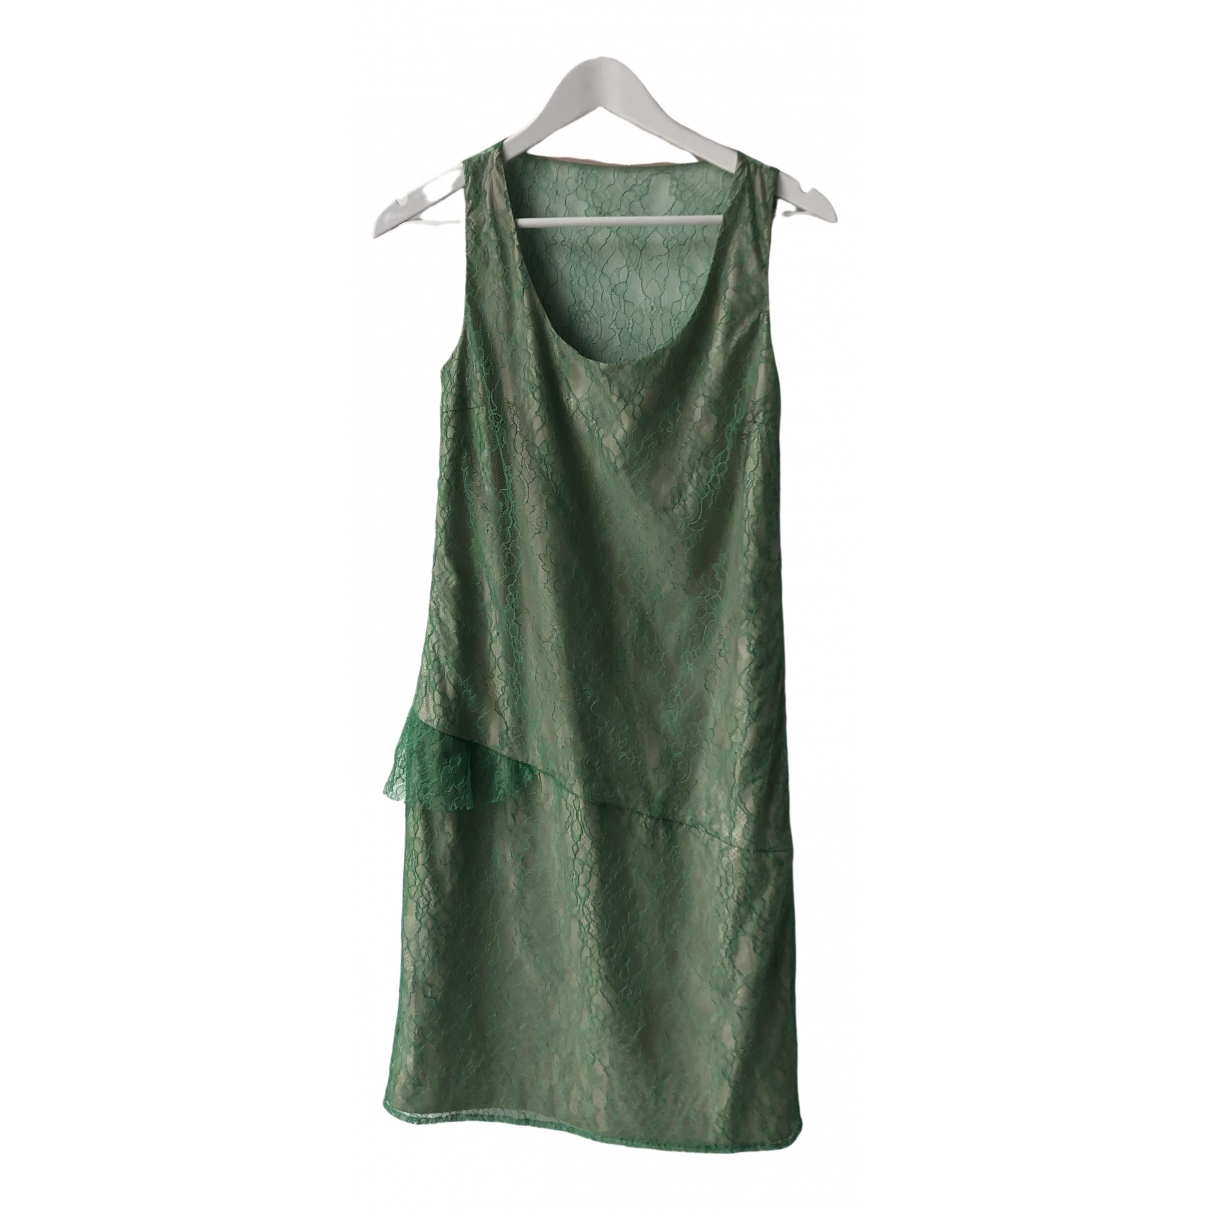 Véronique Branquinho \N Green Lace dress for Women 38 FR